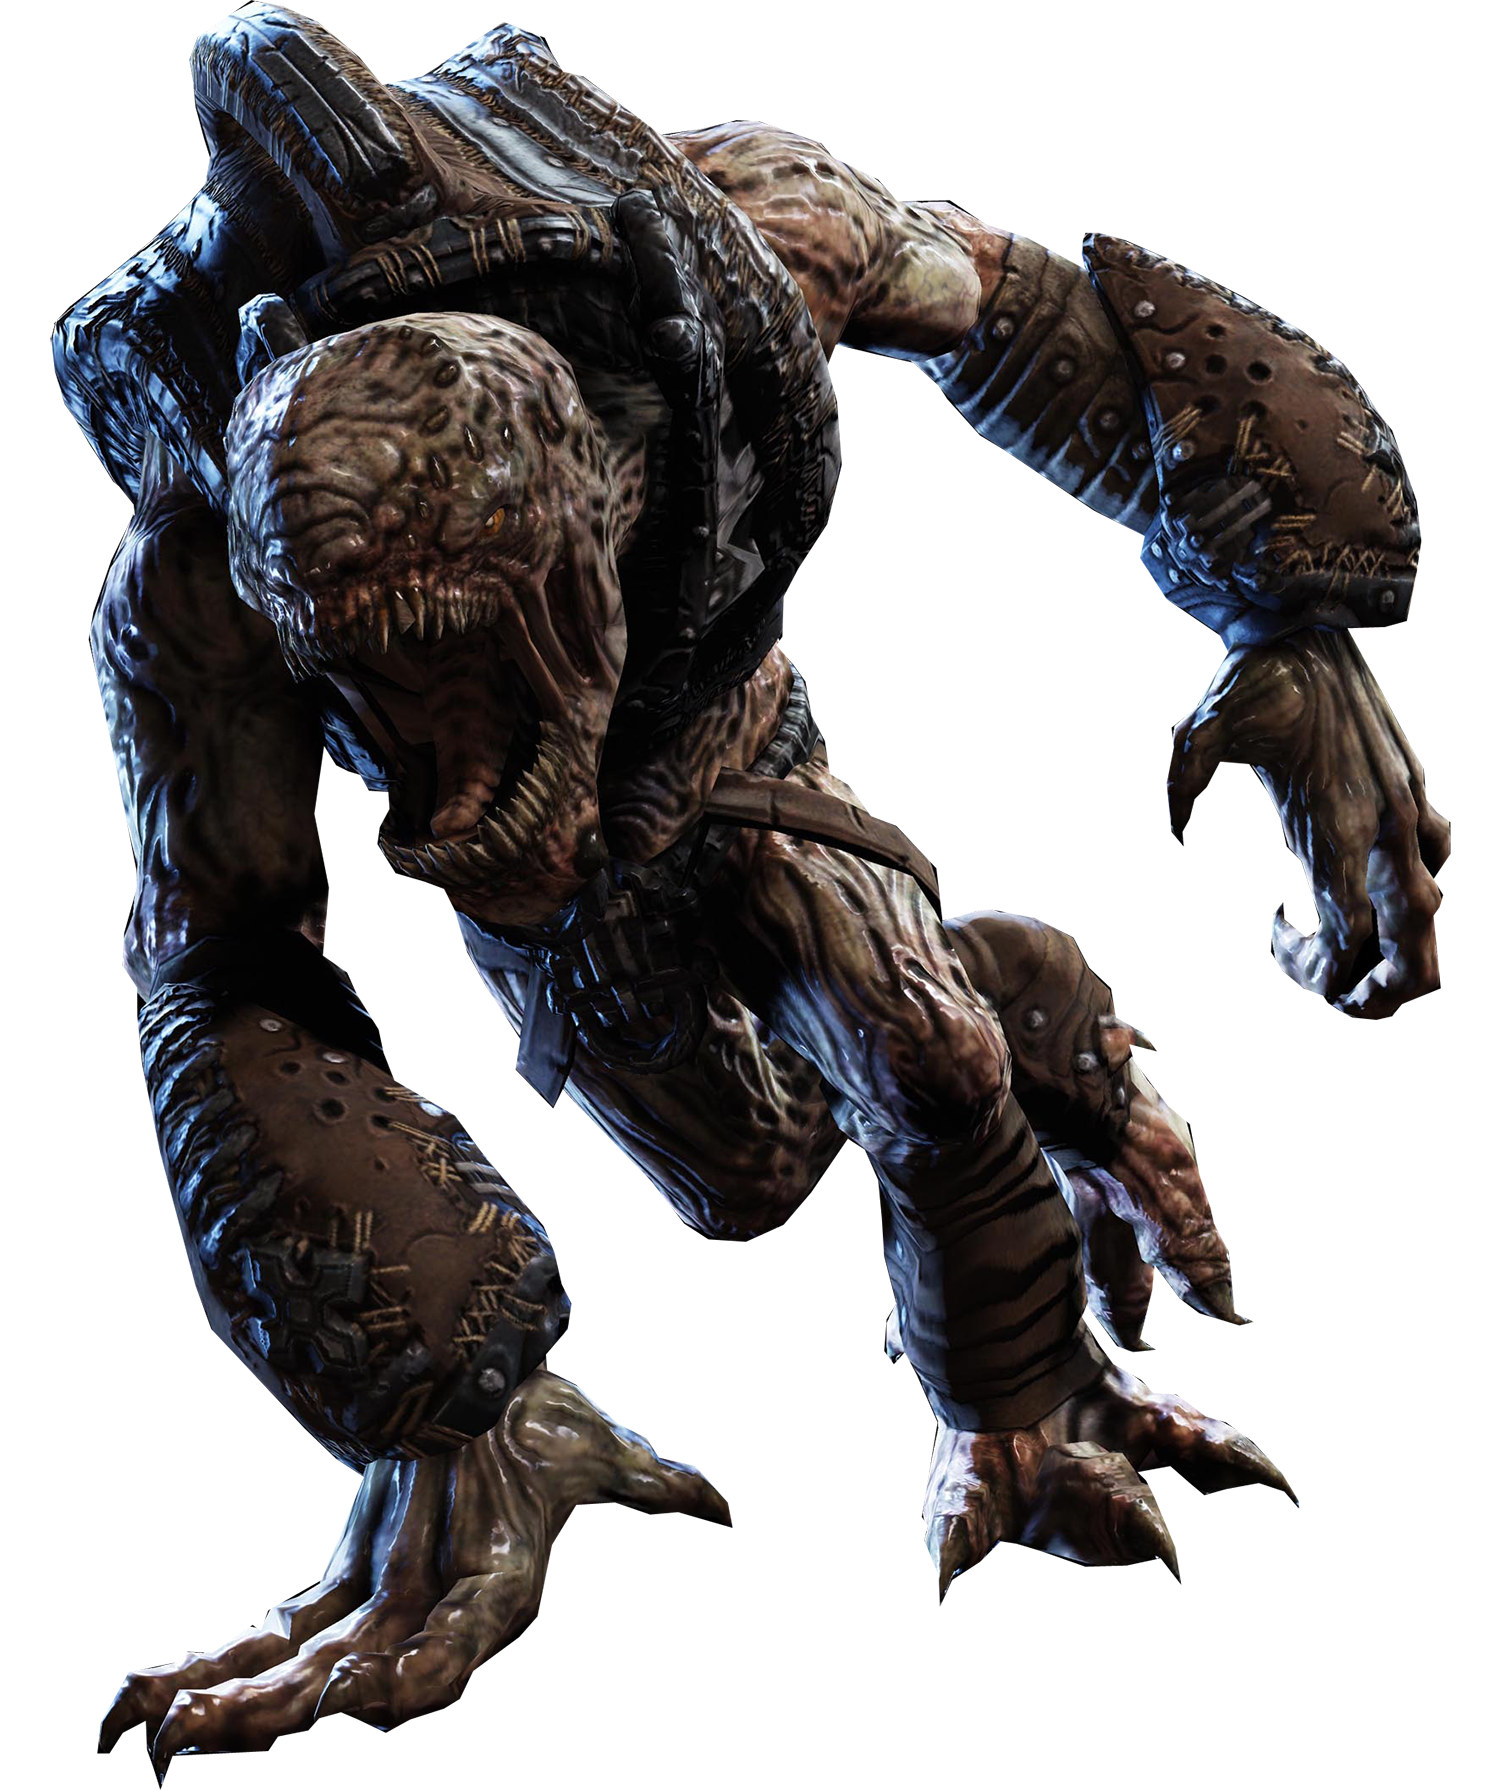 The Wretches From The Gears Of War Series Were Adorable Monkey Dogs